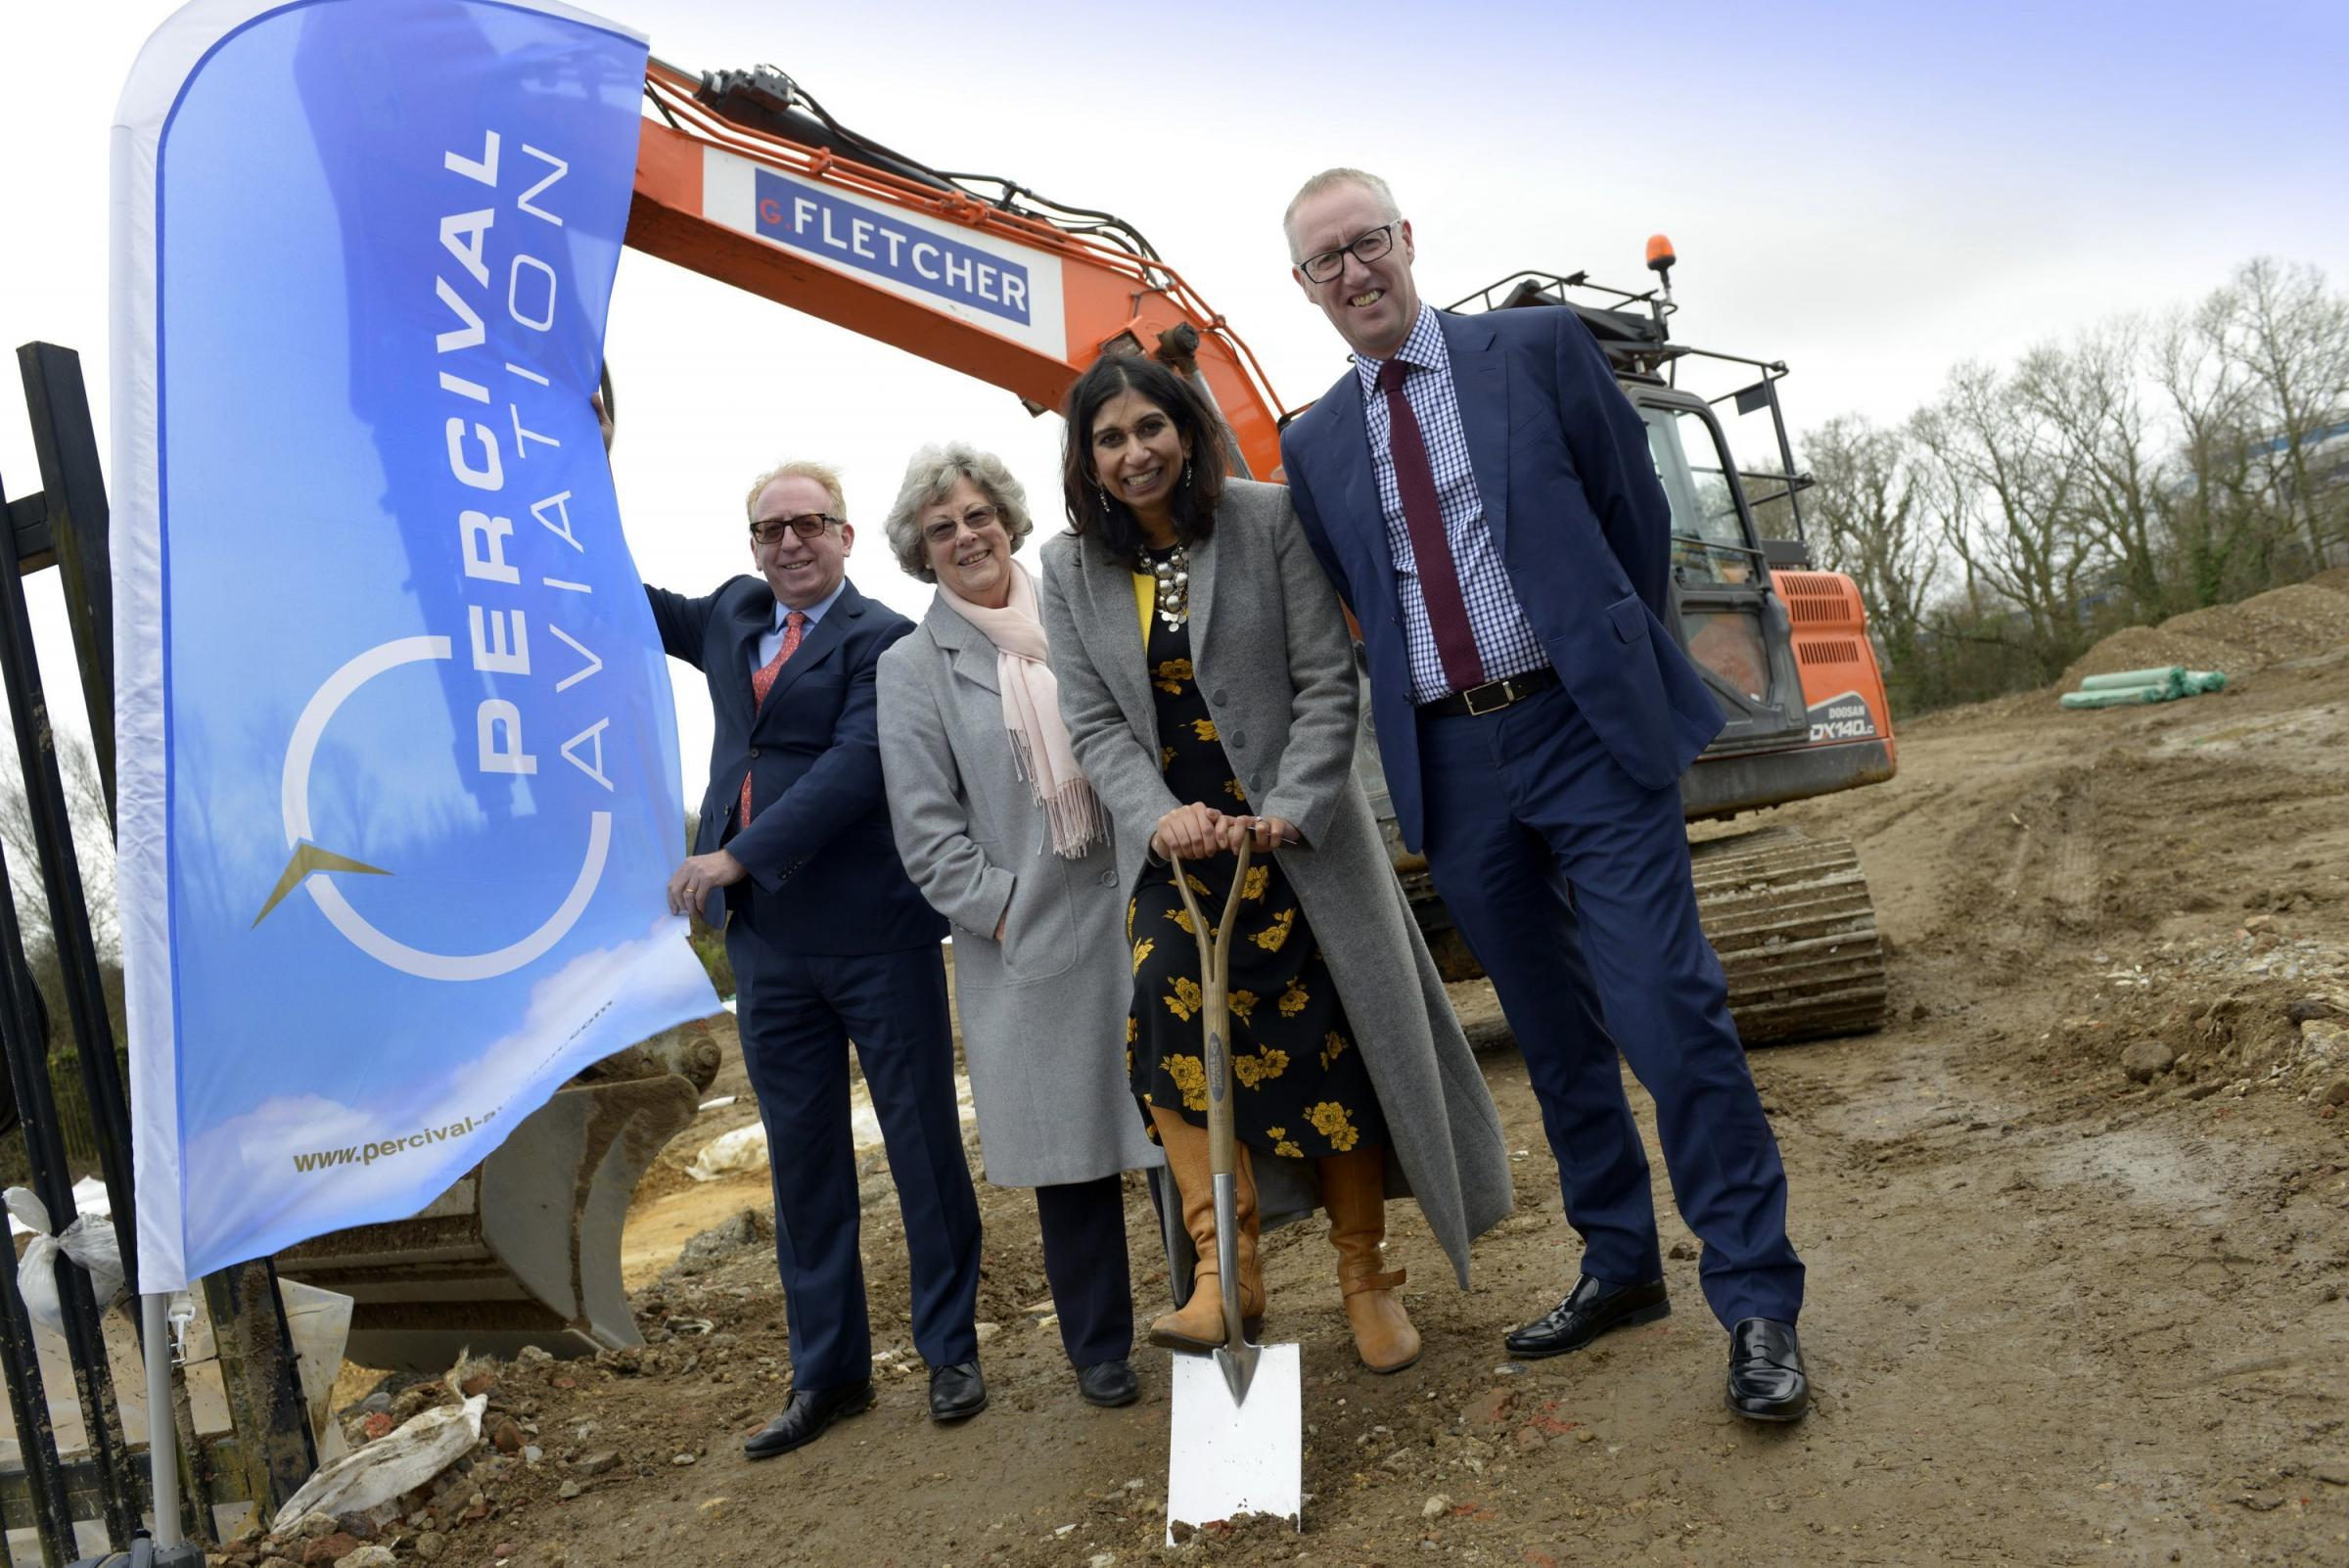 Mike Forster, Managing Director at Marick Developments, which is building the new unit for Percival Aviation; Fareham Borough Councillor Connie Hockley; Suella Braverman MP; Neil Percival, CEO, Percival Aviation